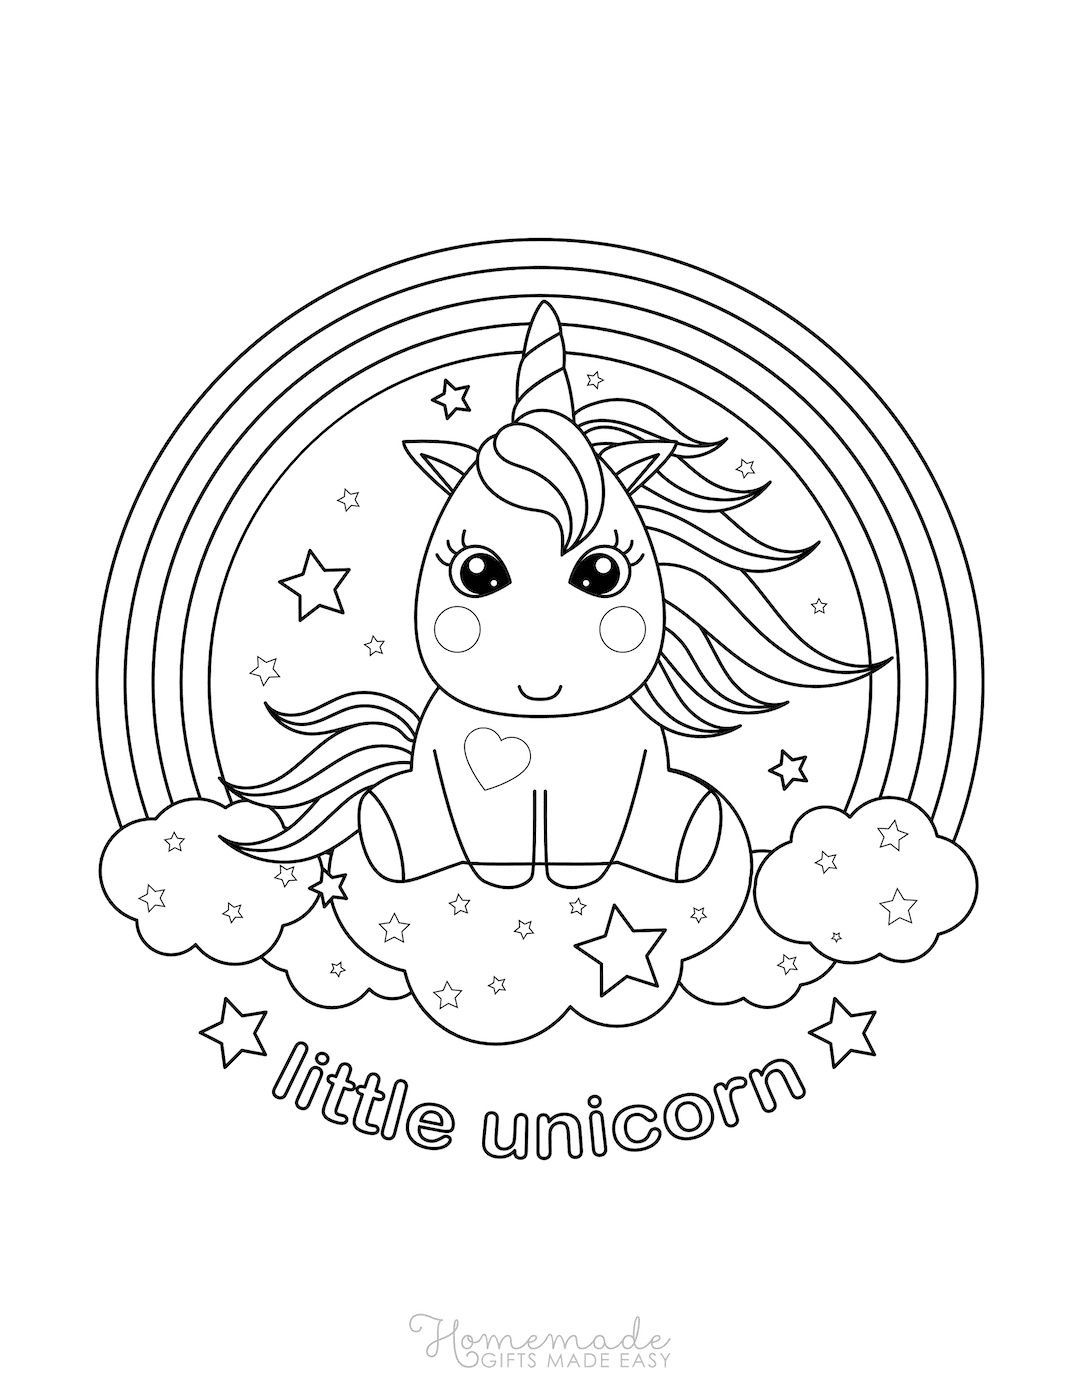 75 Magical Unicorn Coloring Pages For Kids Adults Free Printables Unicorn Coloring Pages Love Coloring Pages Cute Coloring Pages